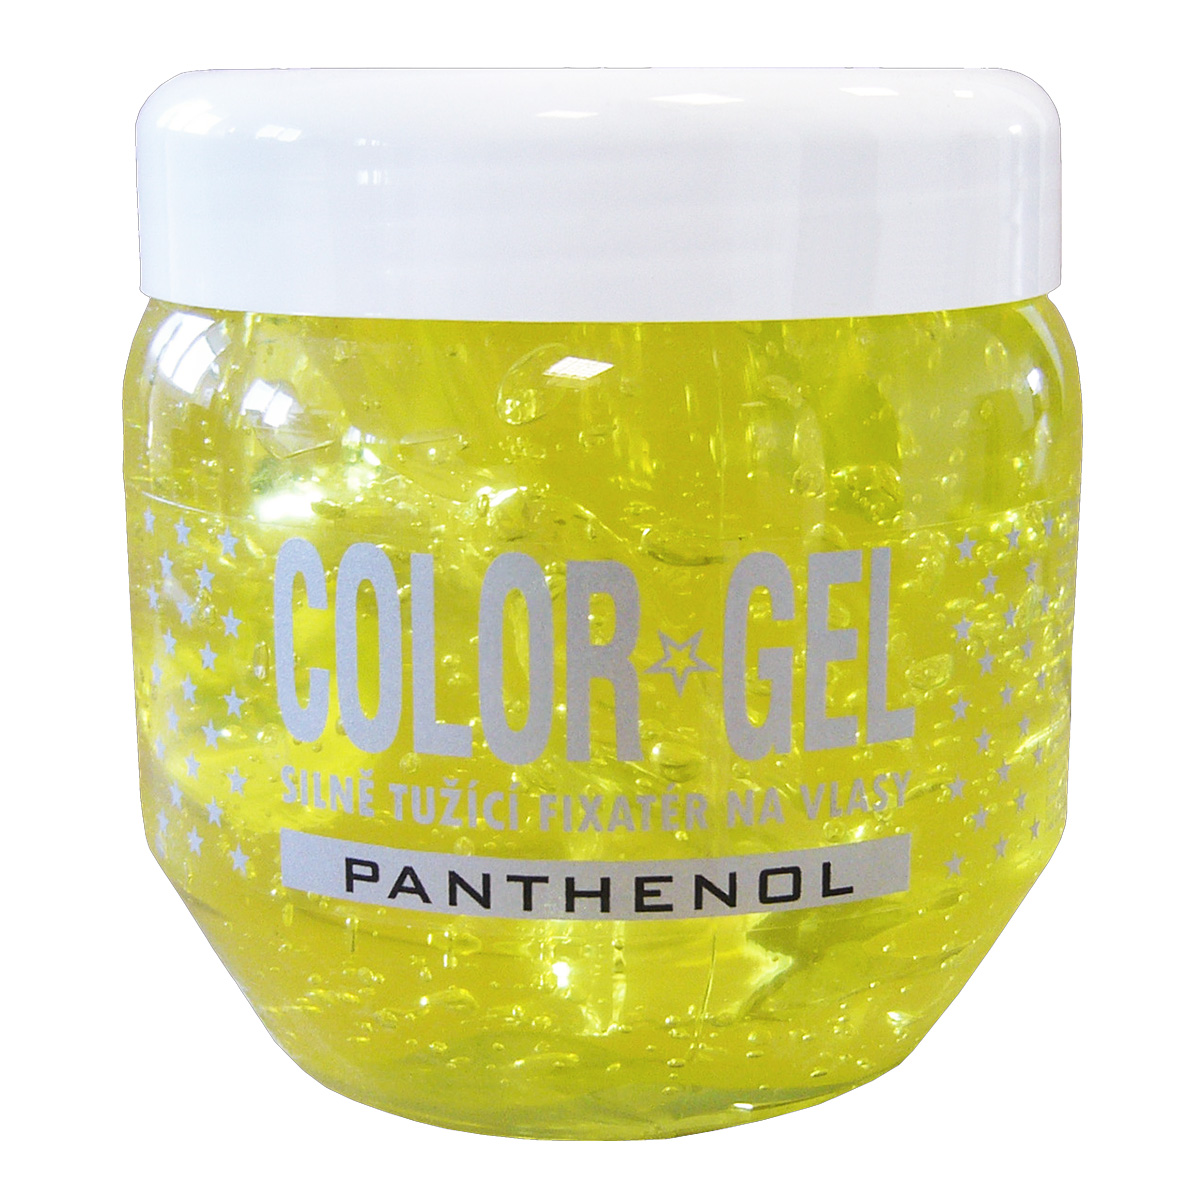 02100 Color gel na vlasy s panthenolem 400ml